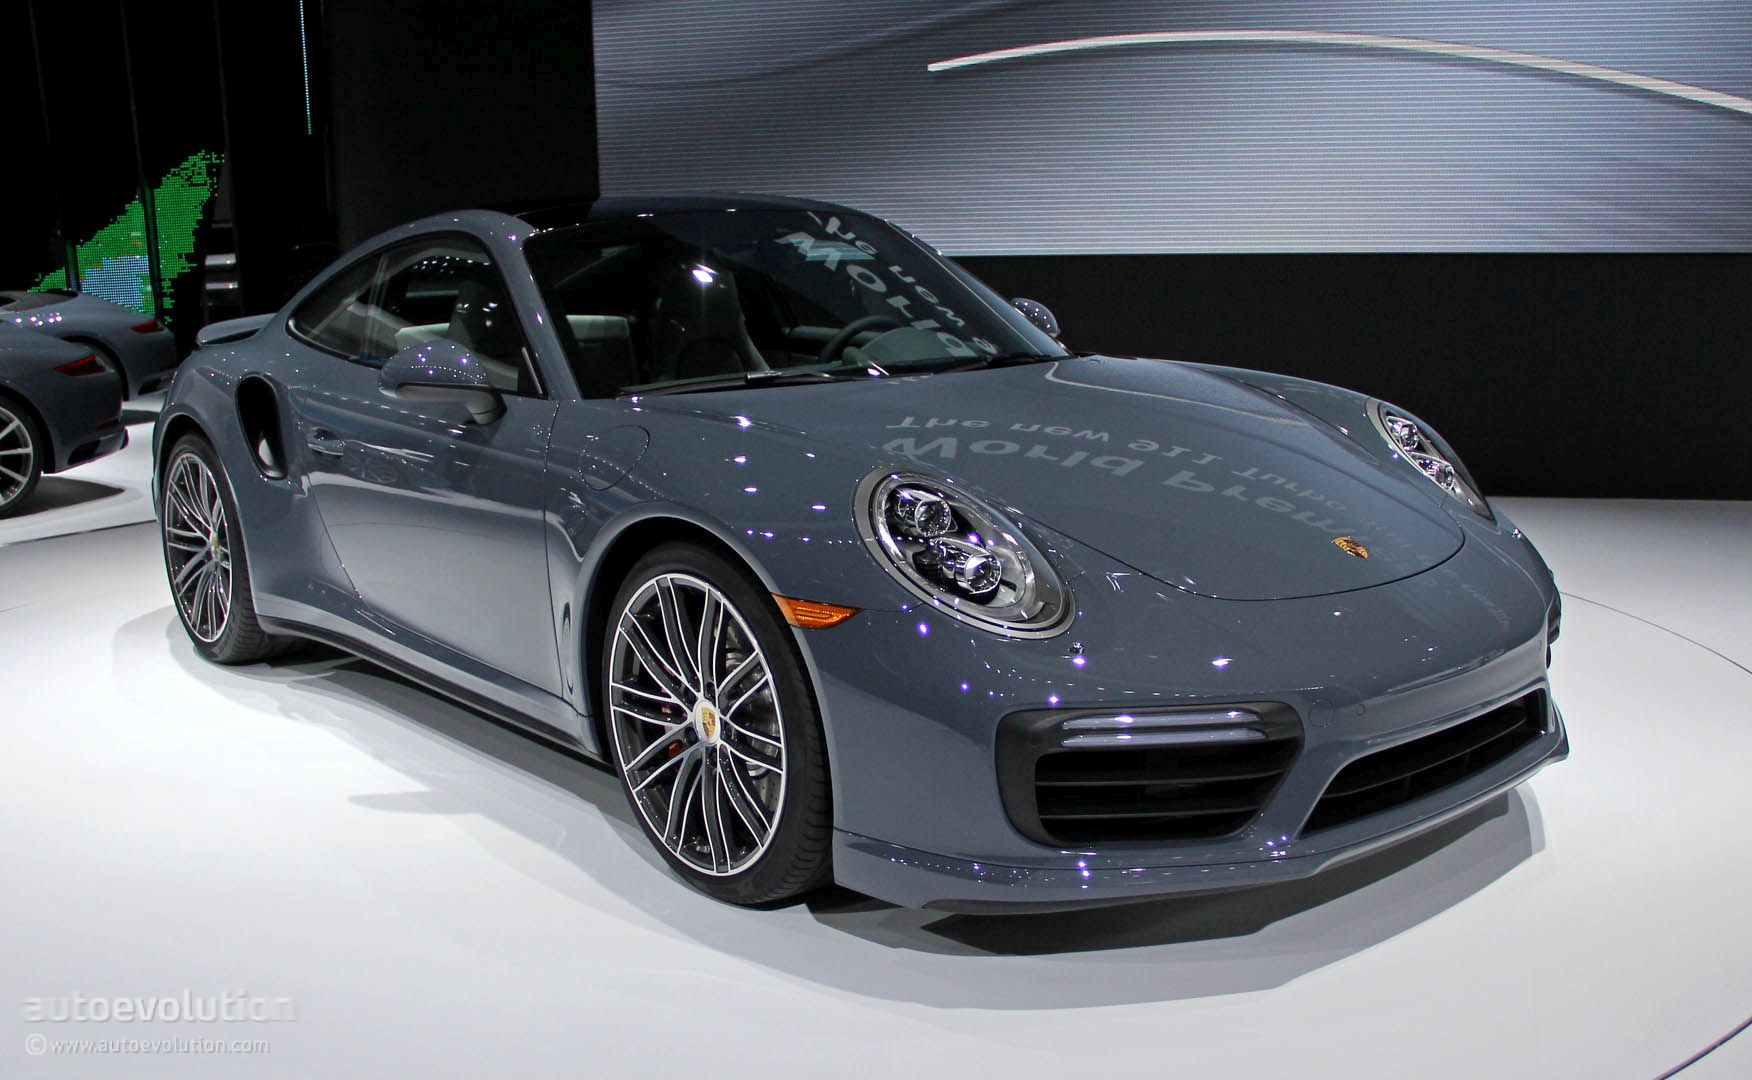 Porsche Estimated 7 18 Ring Time for New 911 Turbo